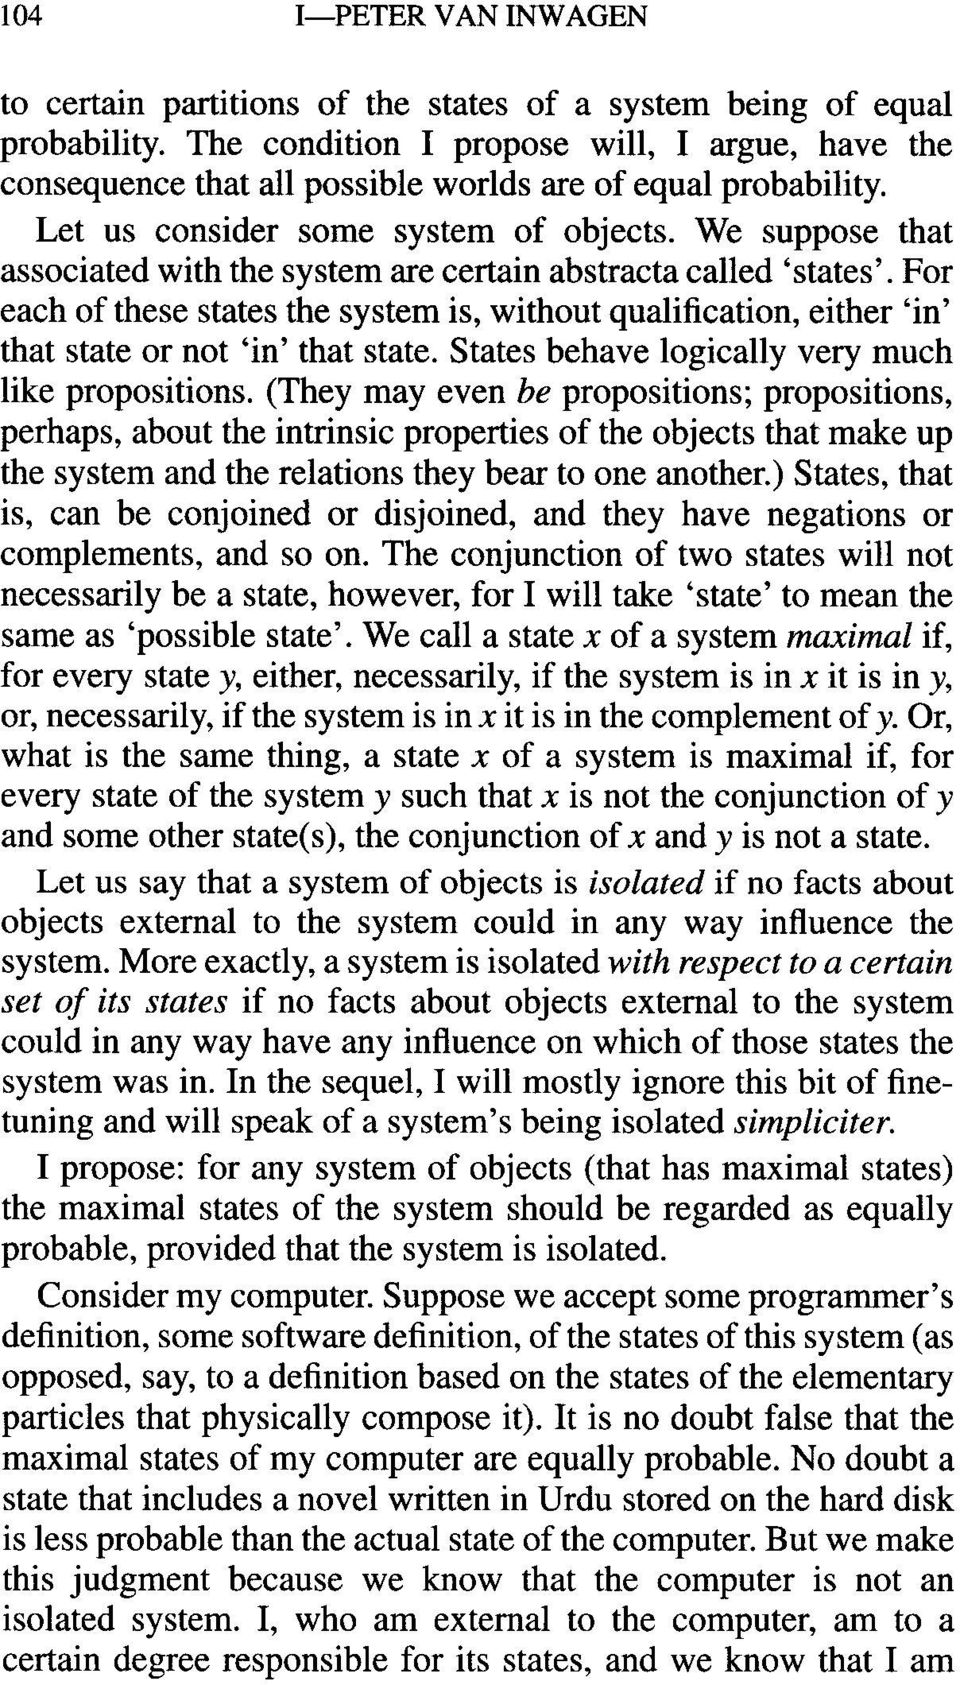 We suppose that associated with the system are certain abstracta called 'states'. For each of these states the system is, without qualification, either 'in' that state or not 'in' that state.